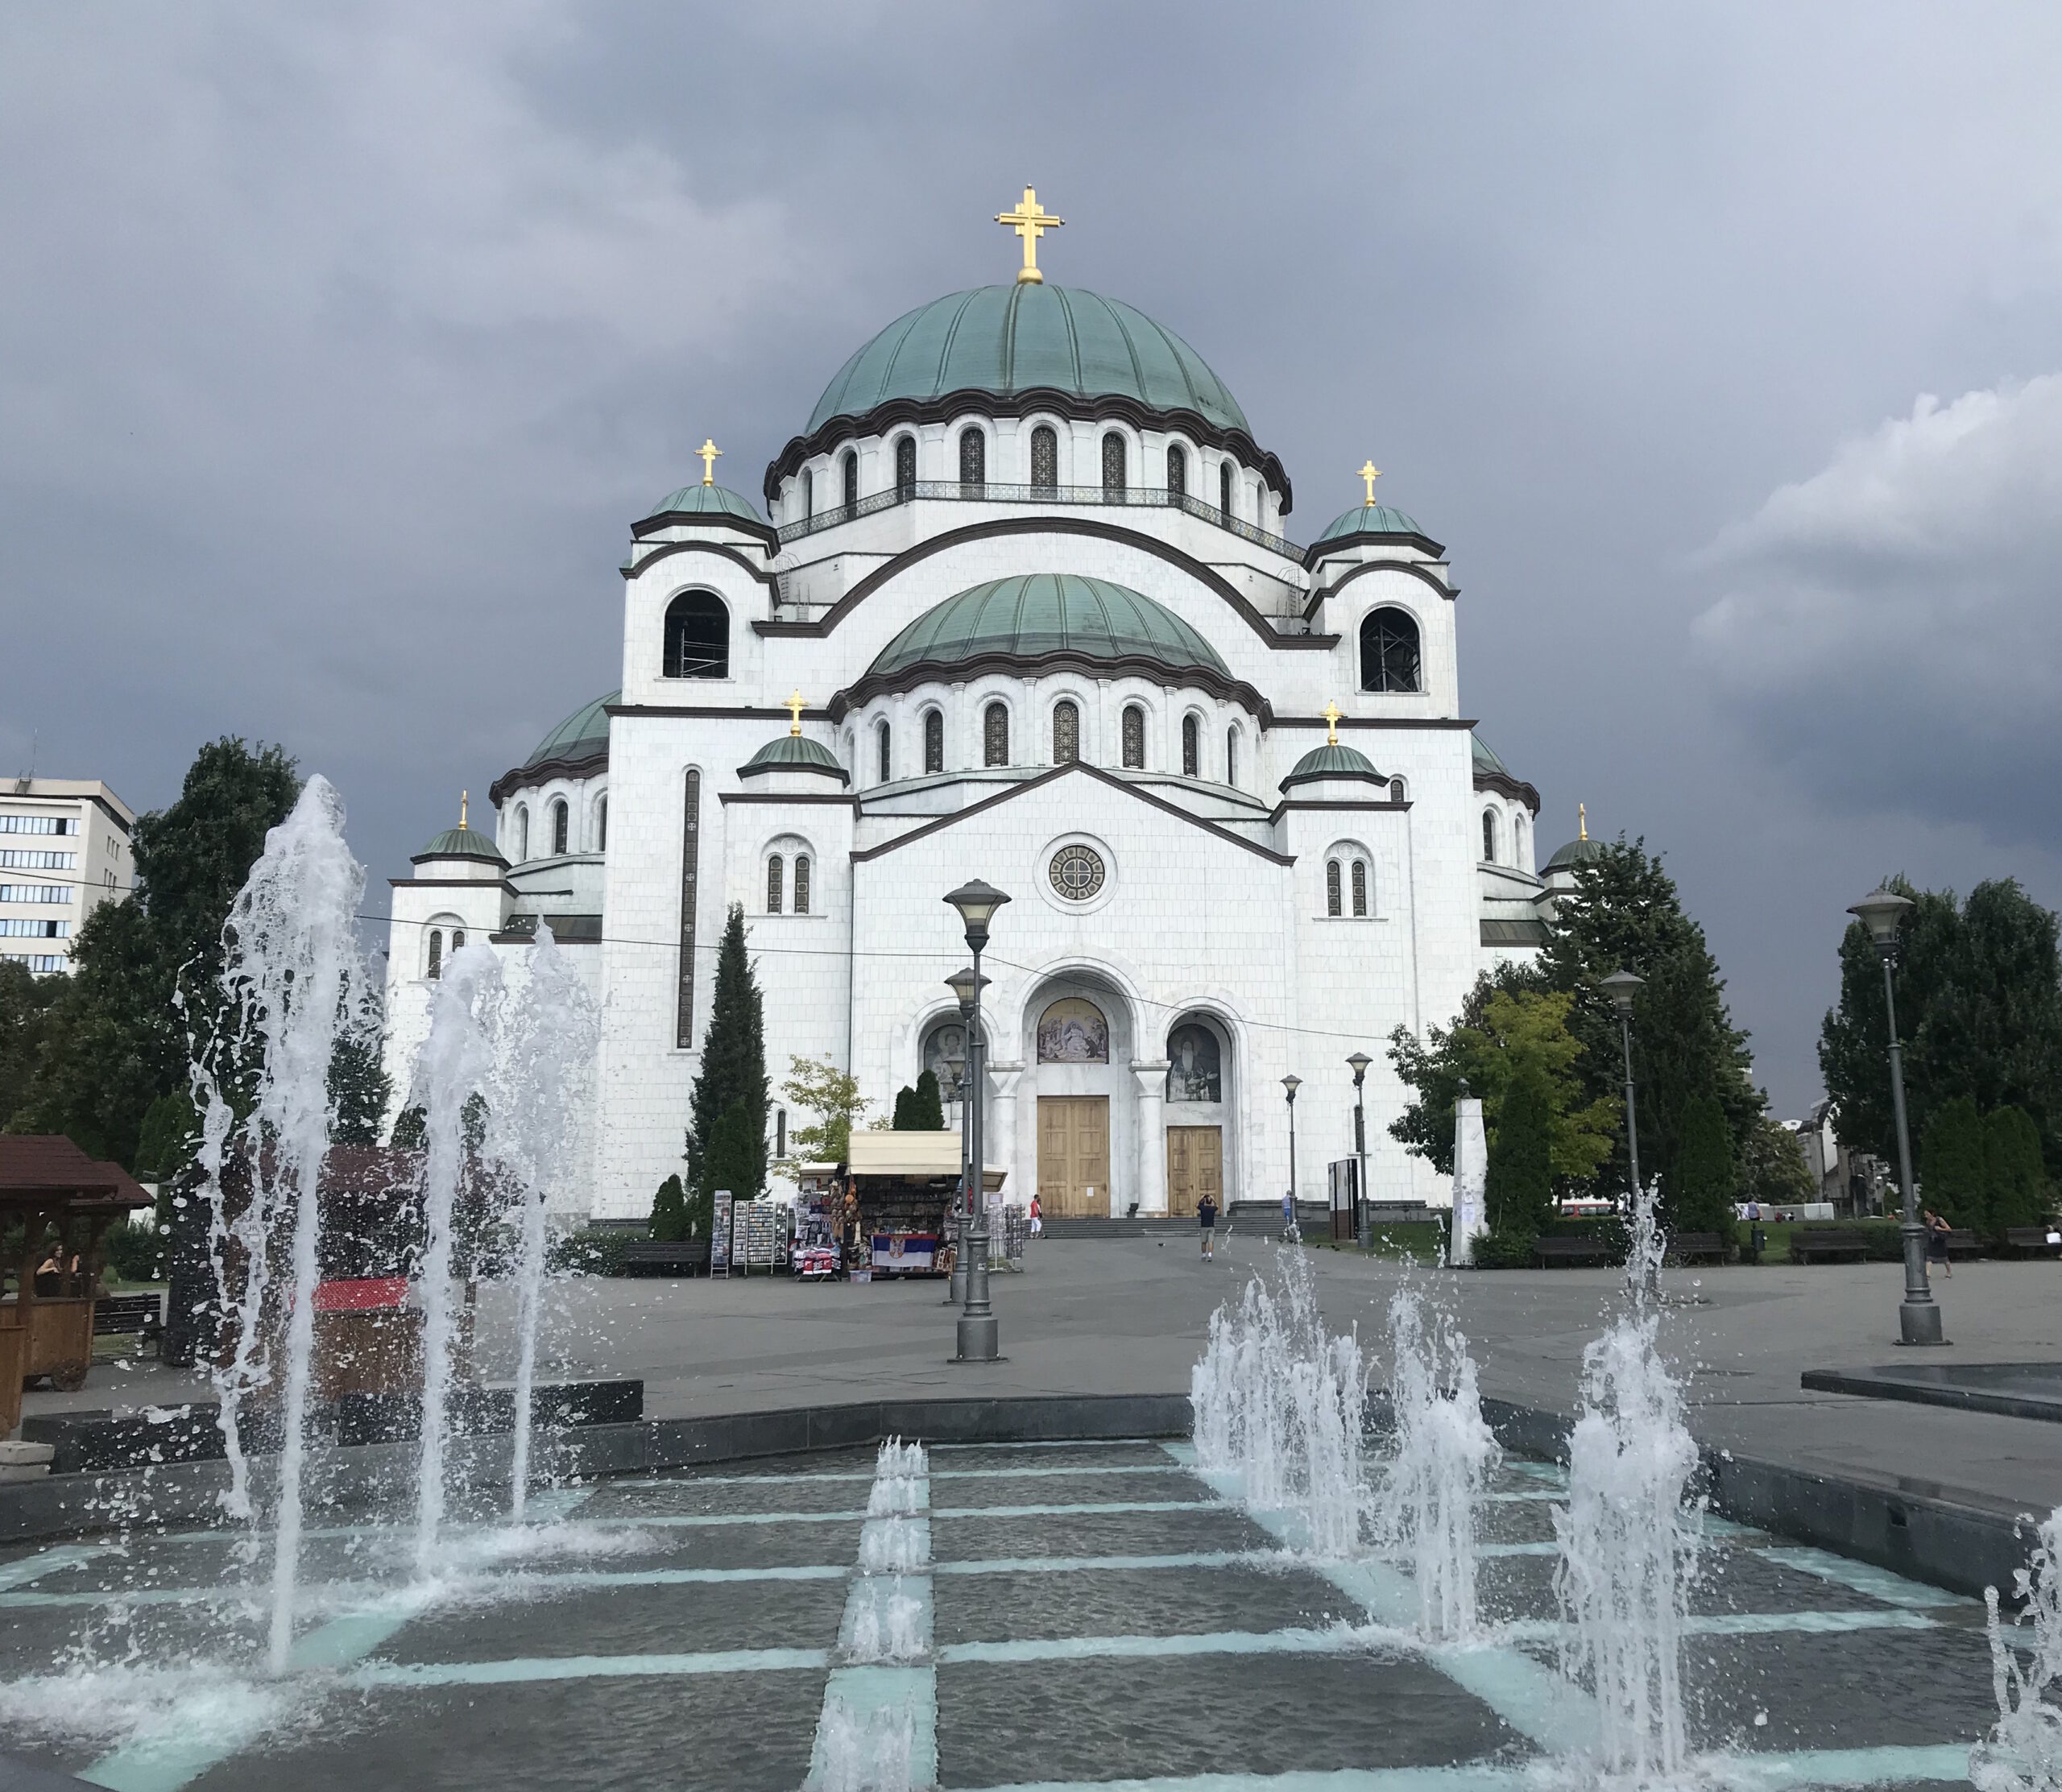 The St. Sava Church in Belgrade Has Been Under Construction for 85 Years and Counting. Here's Why.